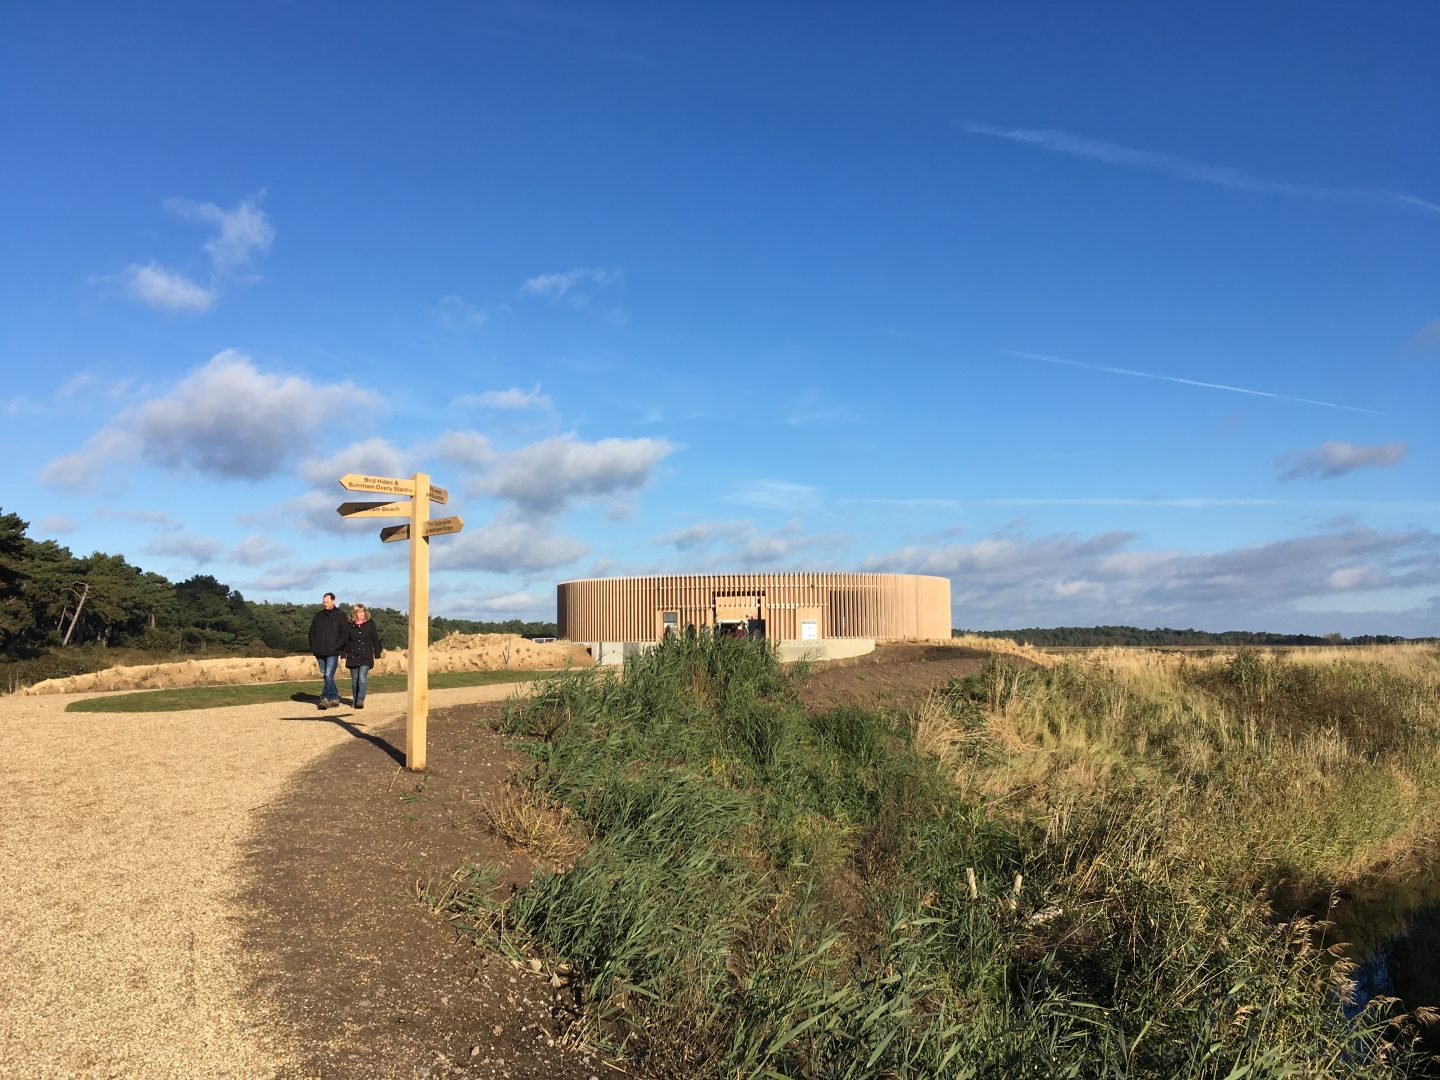 The Lookout at Holkham National Nature Reserve